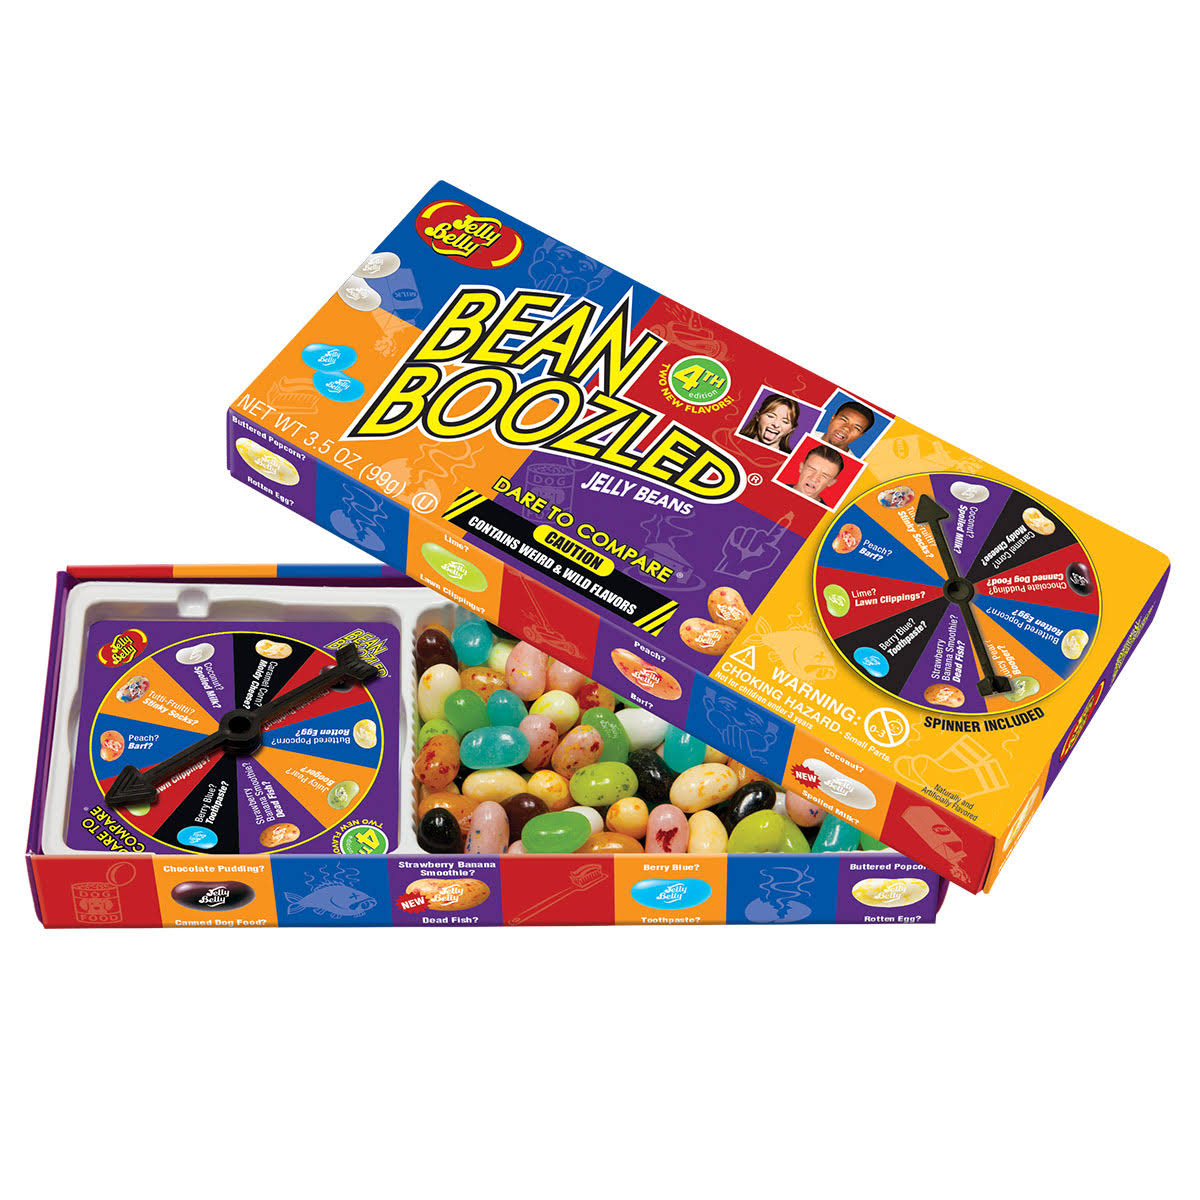 Jelly Belly Bean Boozled Jelly Beans - 99g